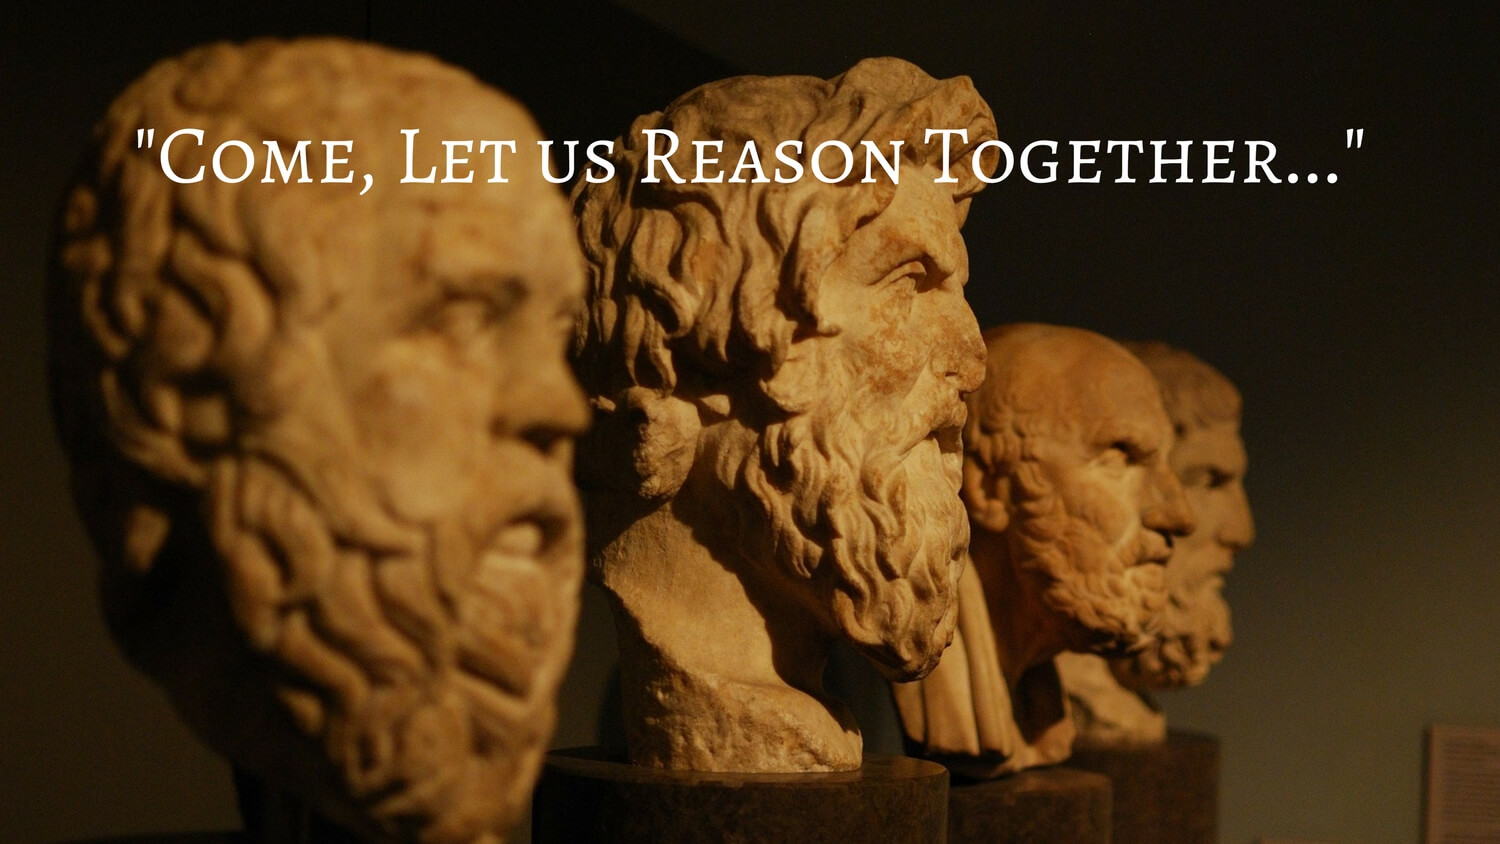 Let-us-reason-together-apologetics